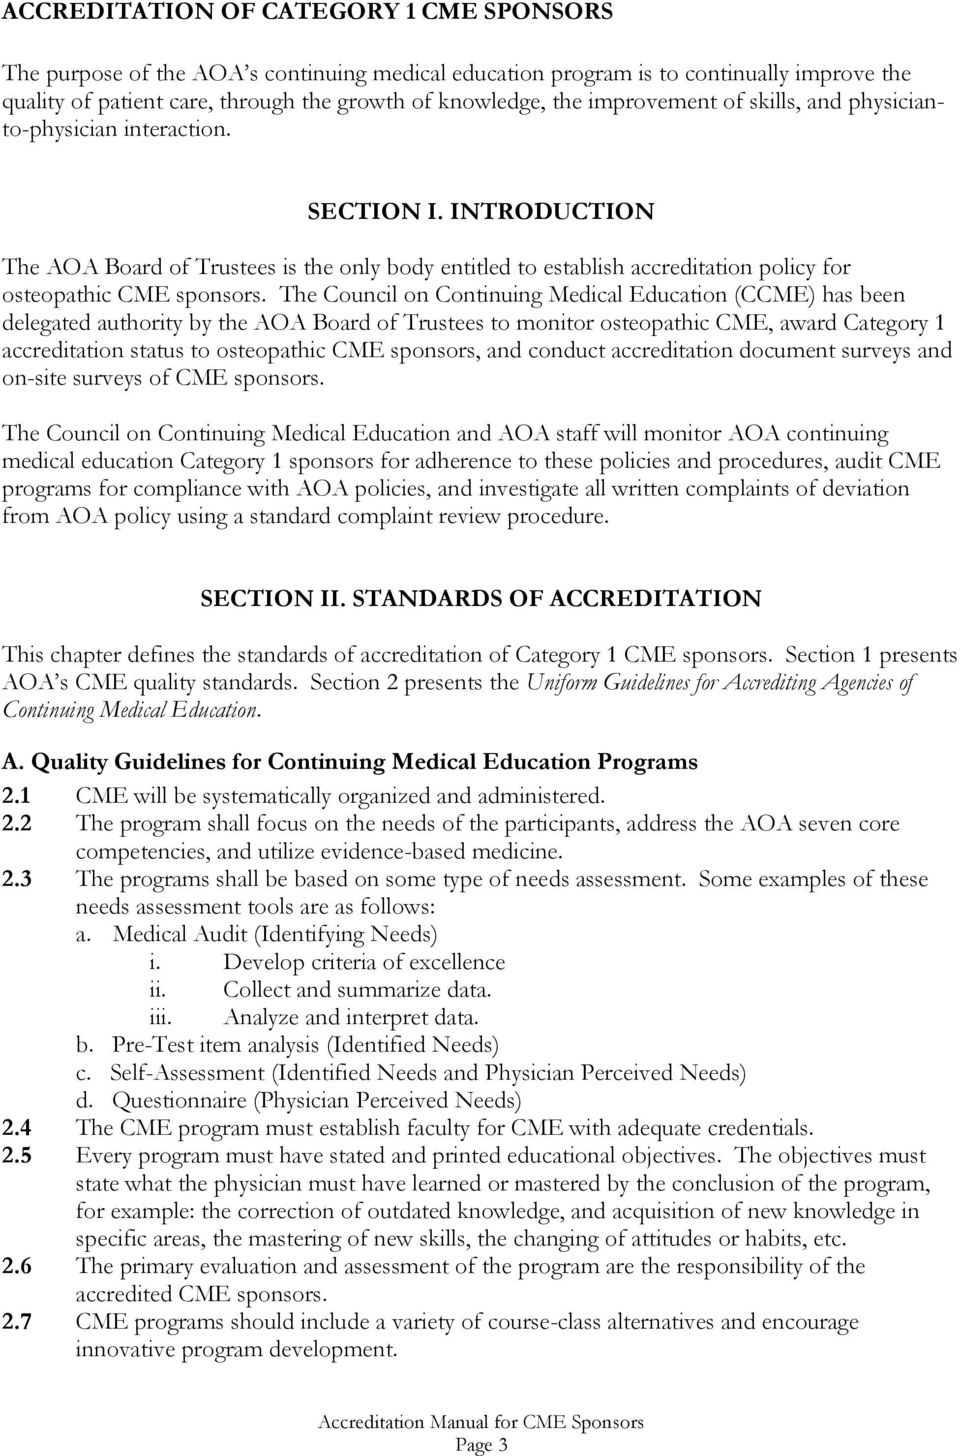 Accreditation Requirements For Category 1 Cme Sponsors Pdf